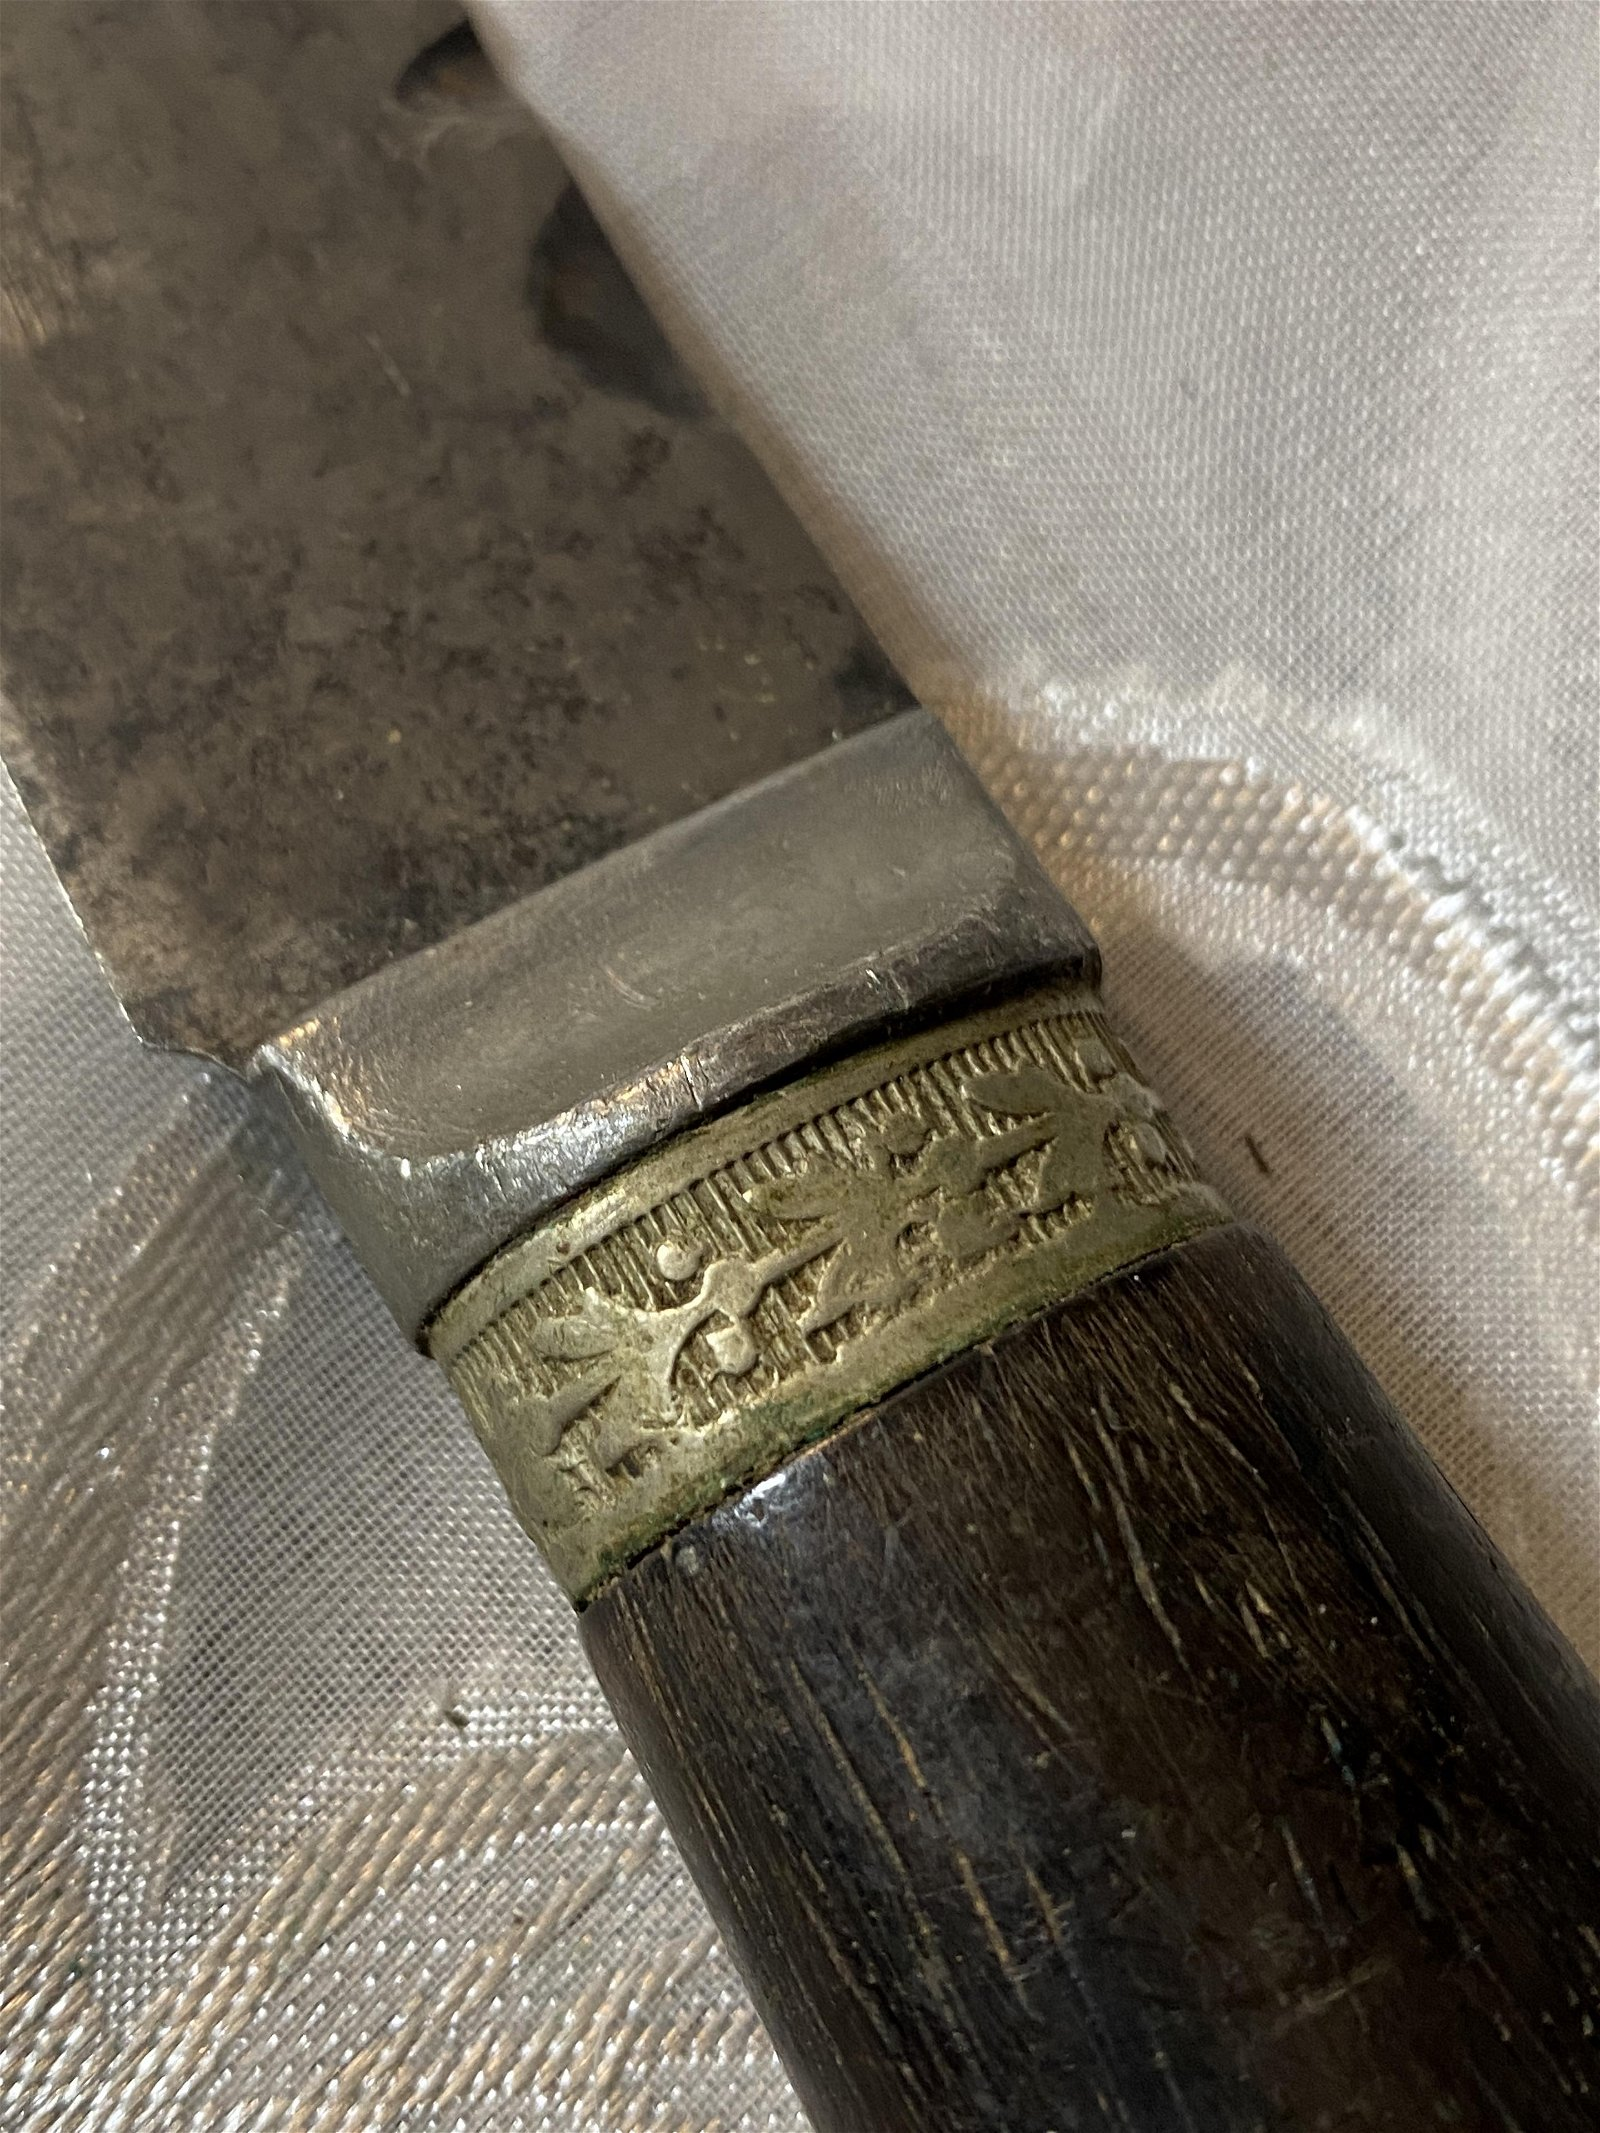 CIVIL WAR CONFEDERATE SOLDIERS HAND-MADE FIGHTING KNIFE